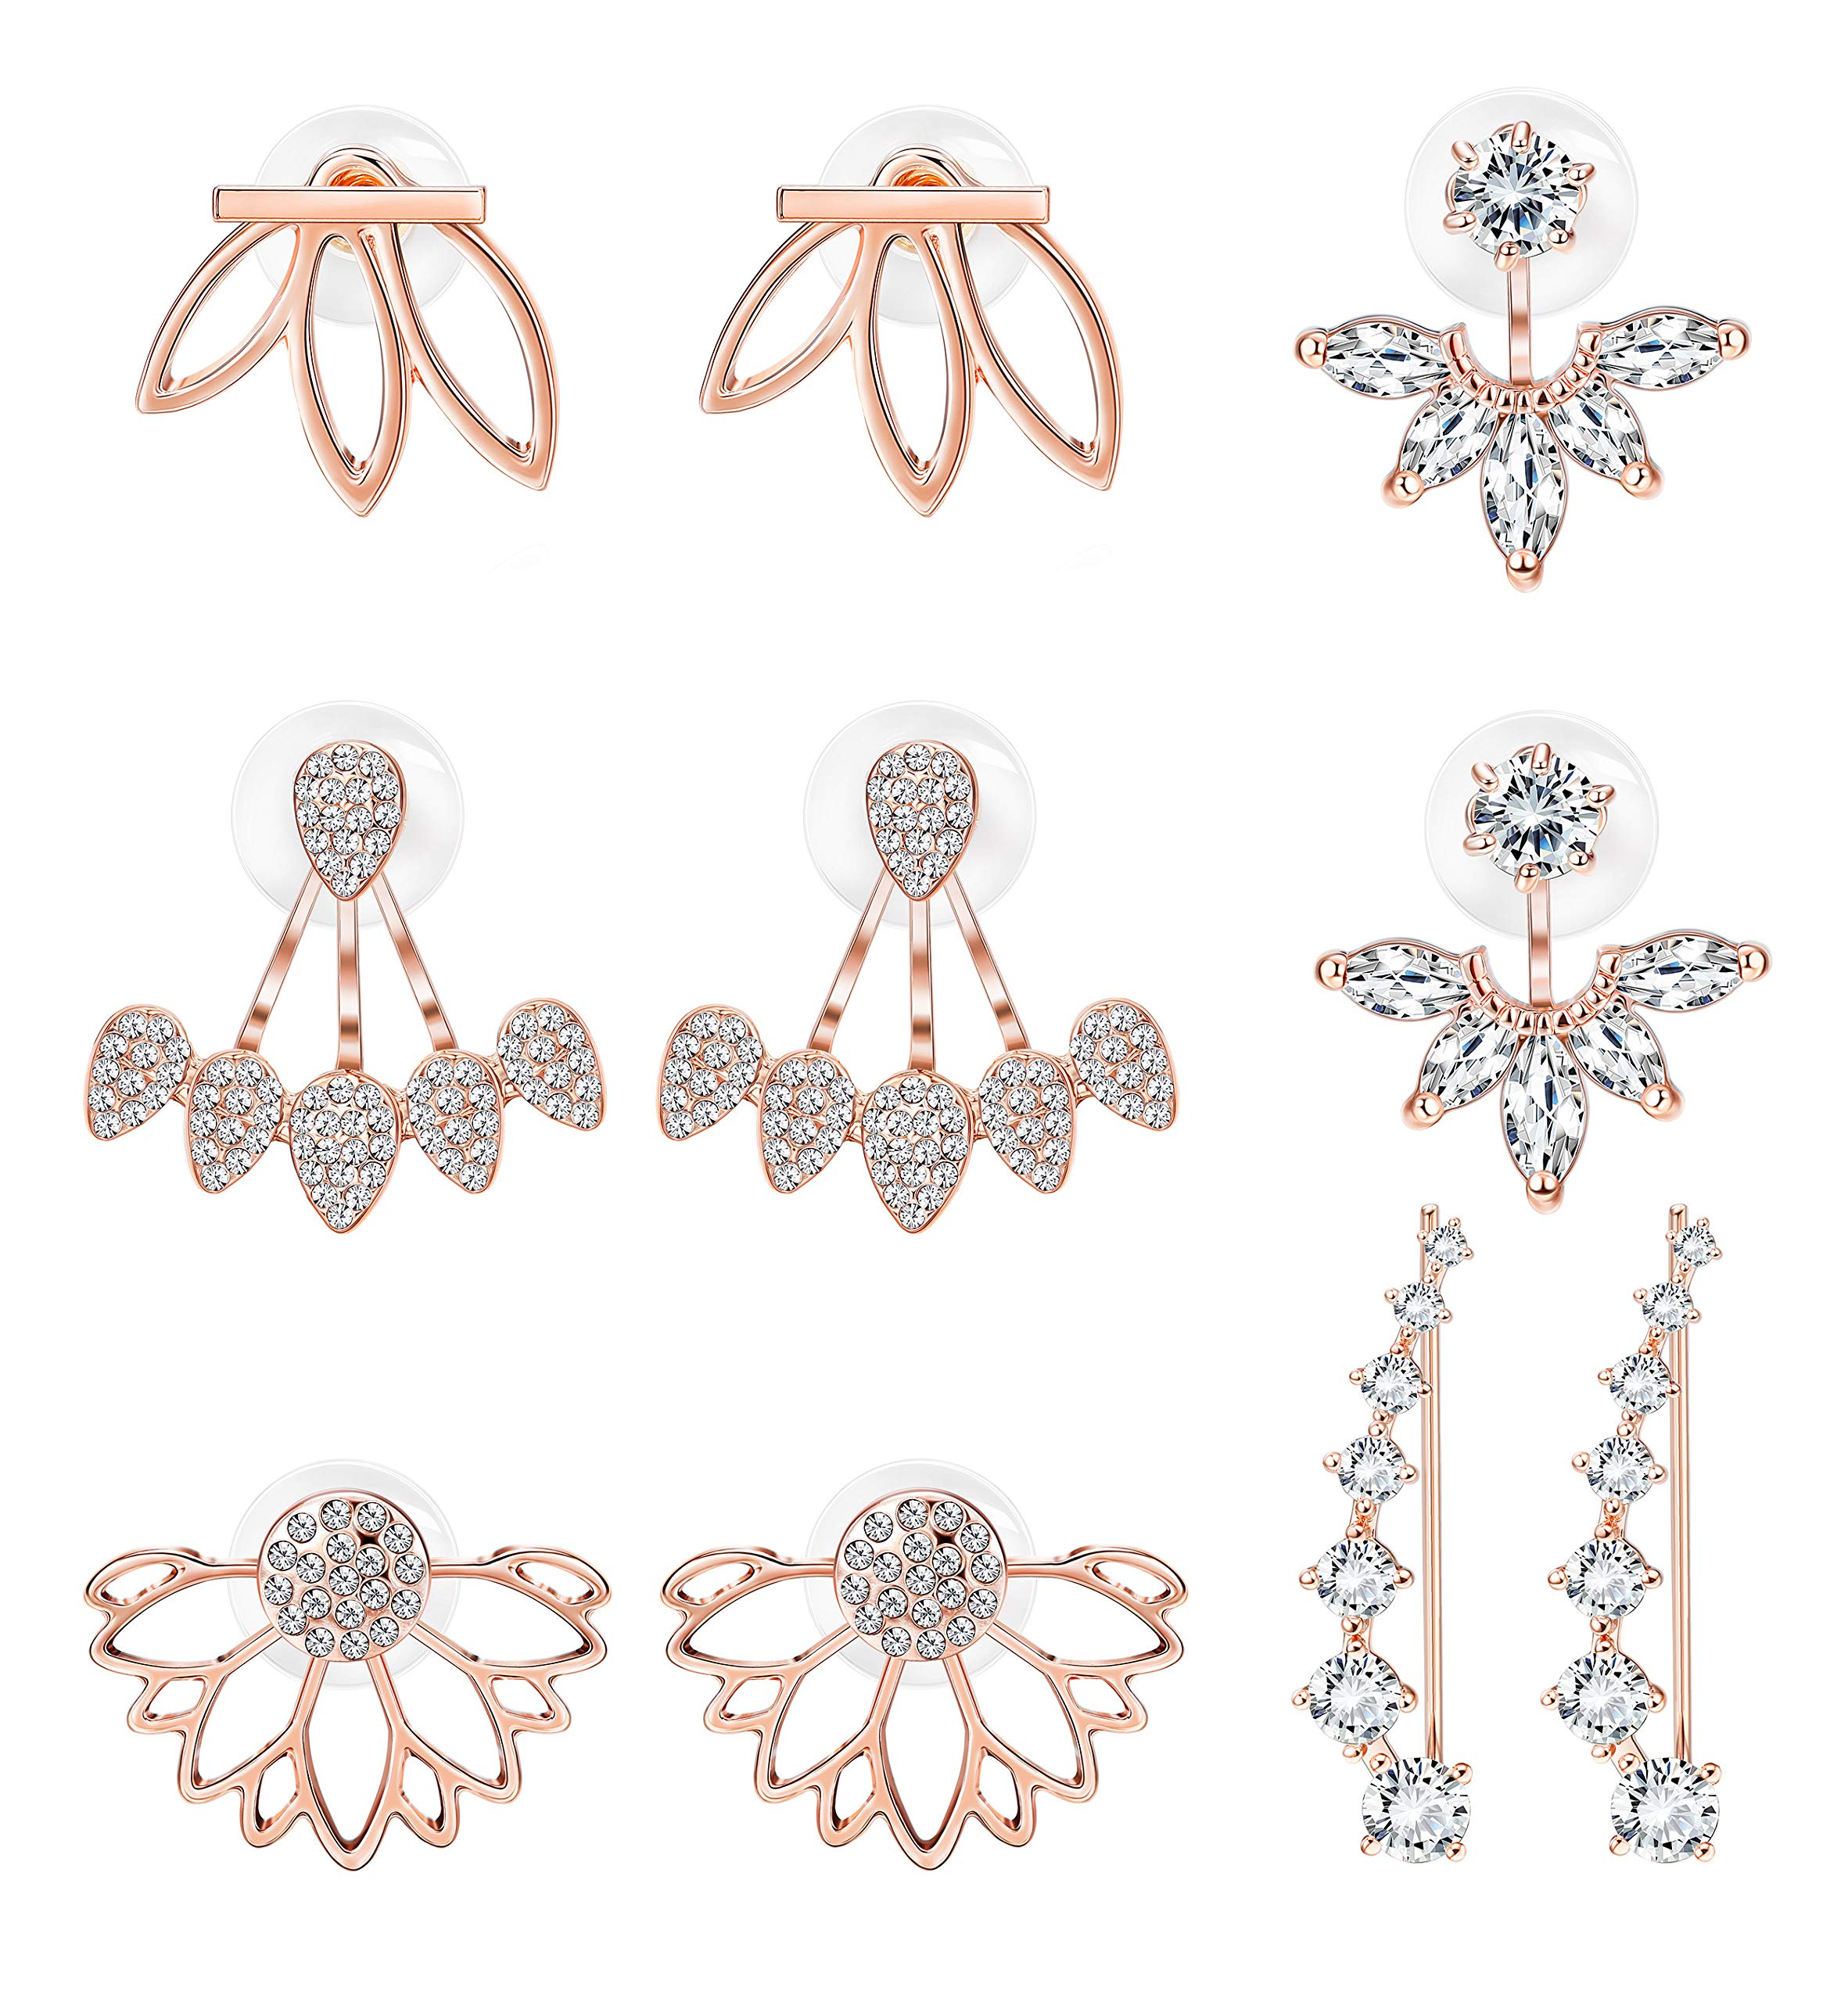 Milacolato 5 pairs Hollow Lotus Flower Ear Jackets For Women Girls Ear Stud Simple Chic Earrings Rose-gold by Milacolato